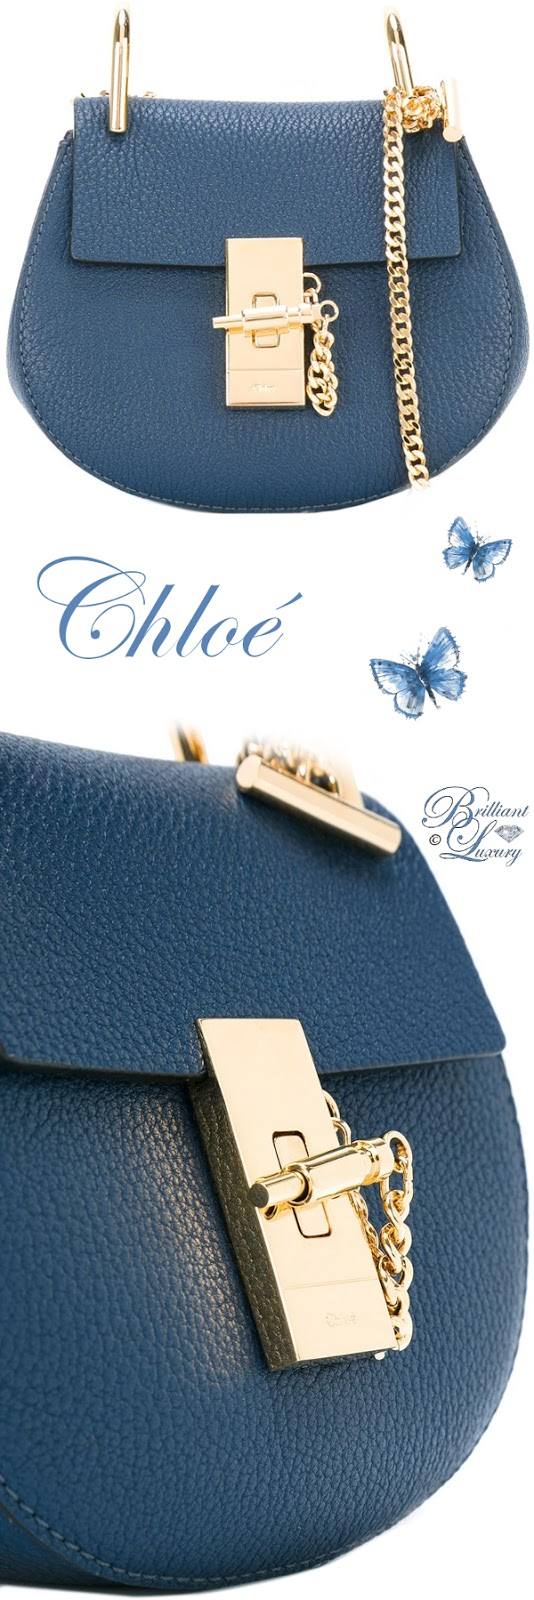 Brilliant Luxury ♦ Chloé Nano Drew Crossbody Bag